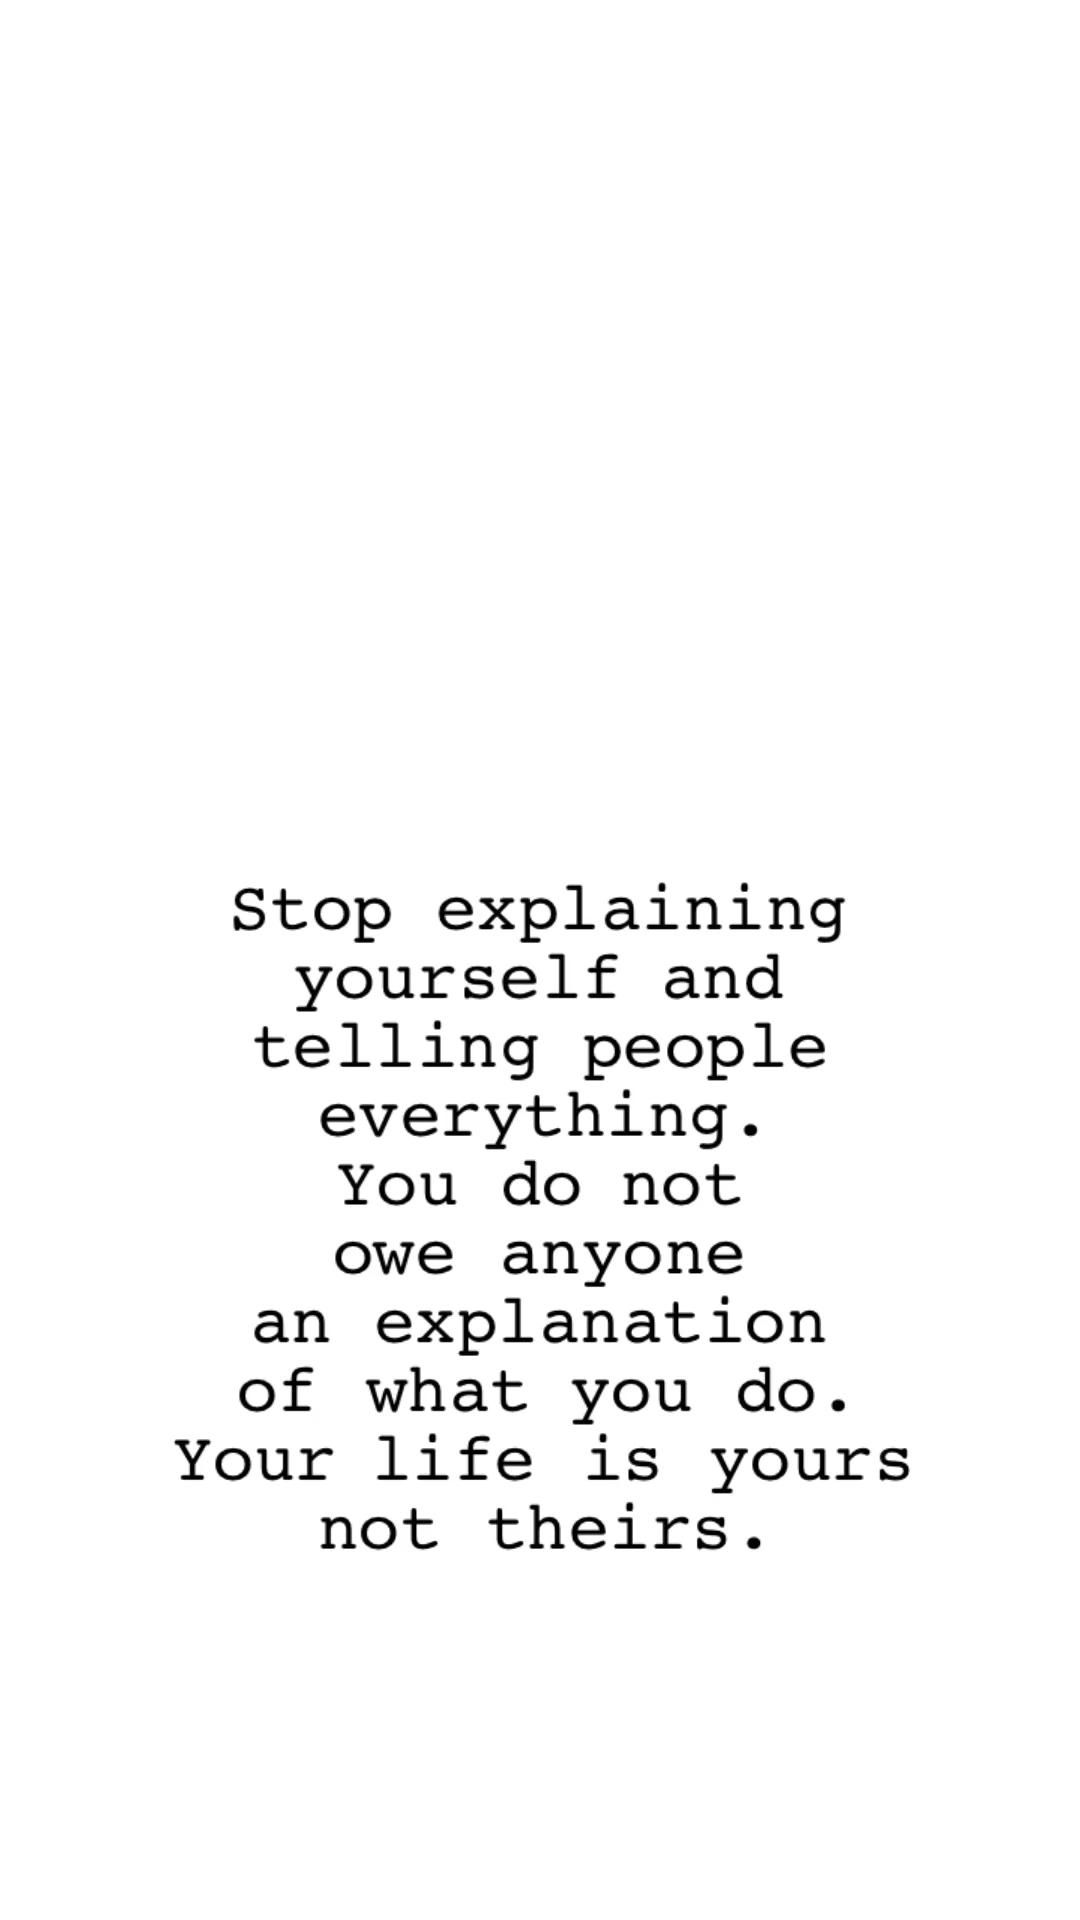 Just keep on doing your own thing, darling.